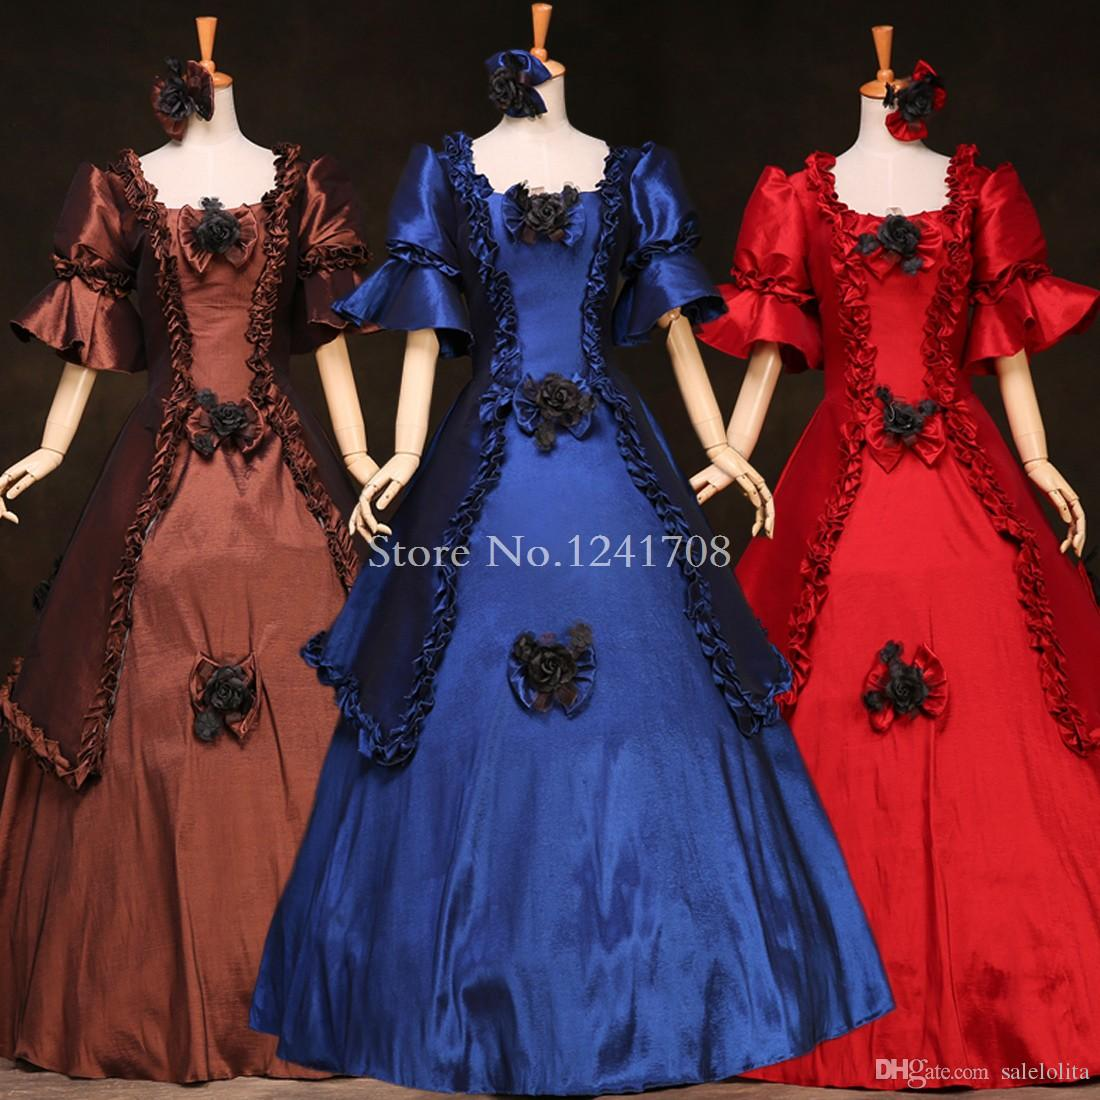 Victorian Dresses For Sale Costumes. Aliexpress.com : Buy victorian ...